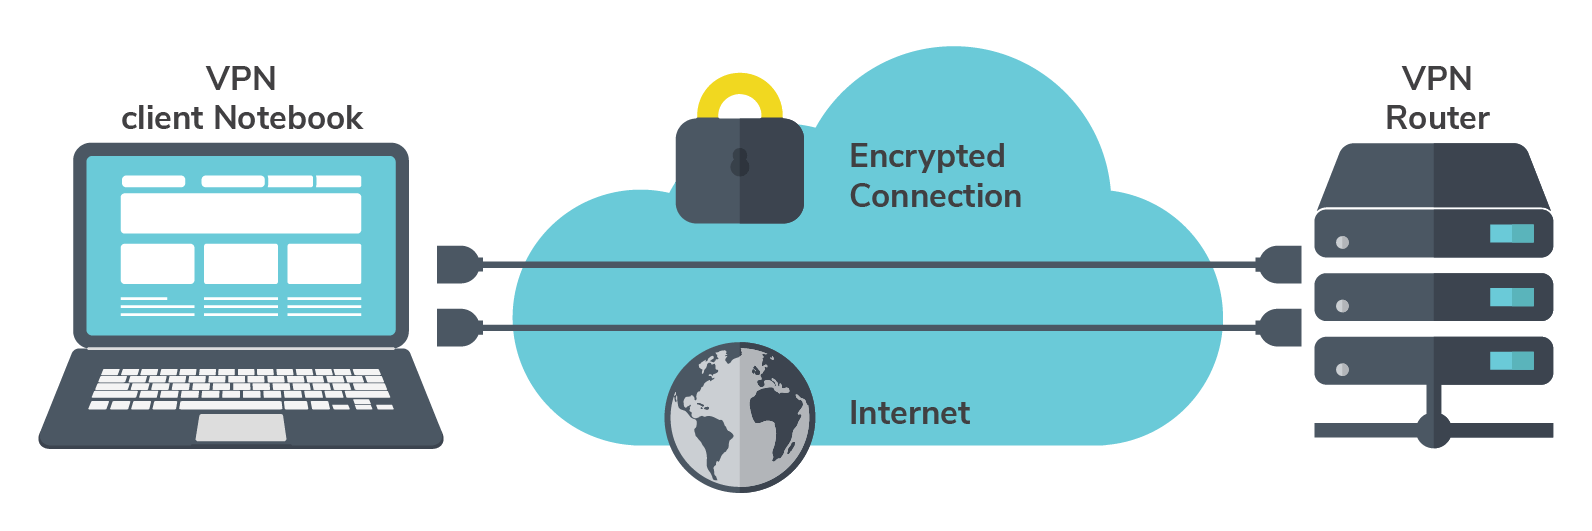 Enjoy Full Privacy on the Most Secure VPN - Image #4